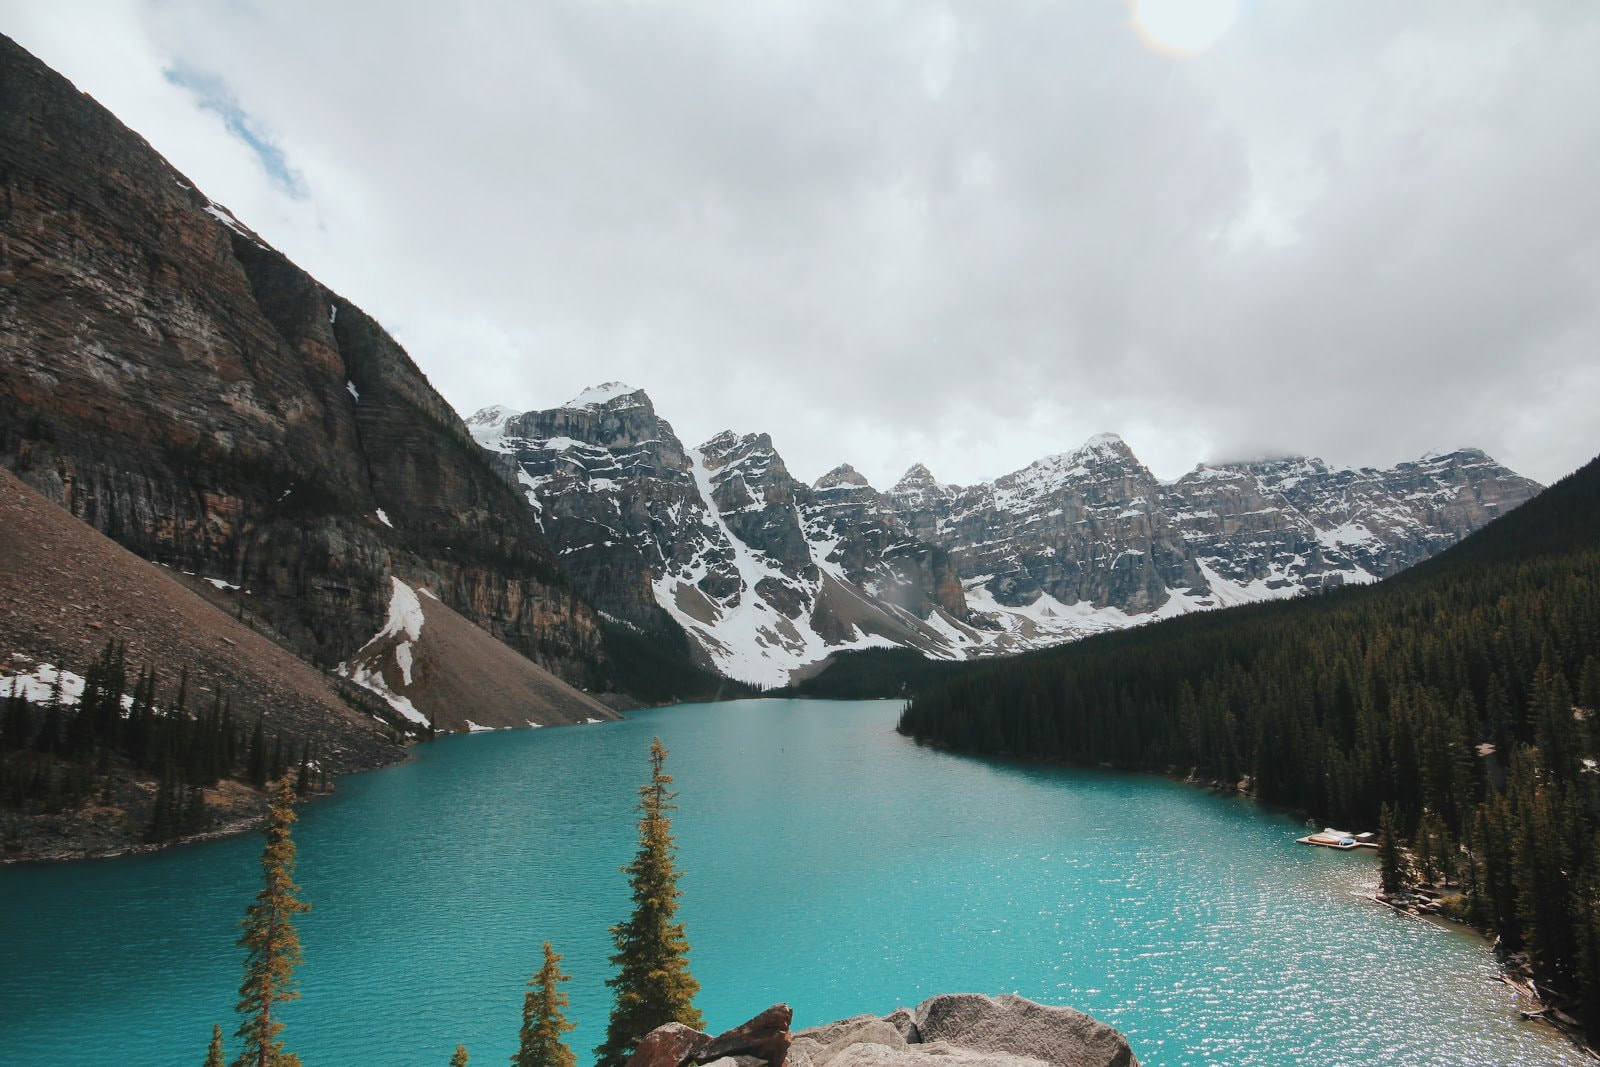 Cold mountains and blue waters photo by Christine Donaldson